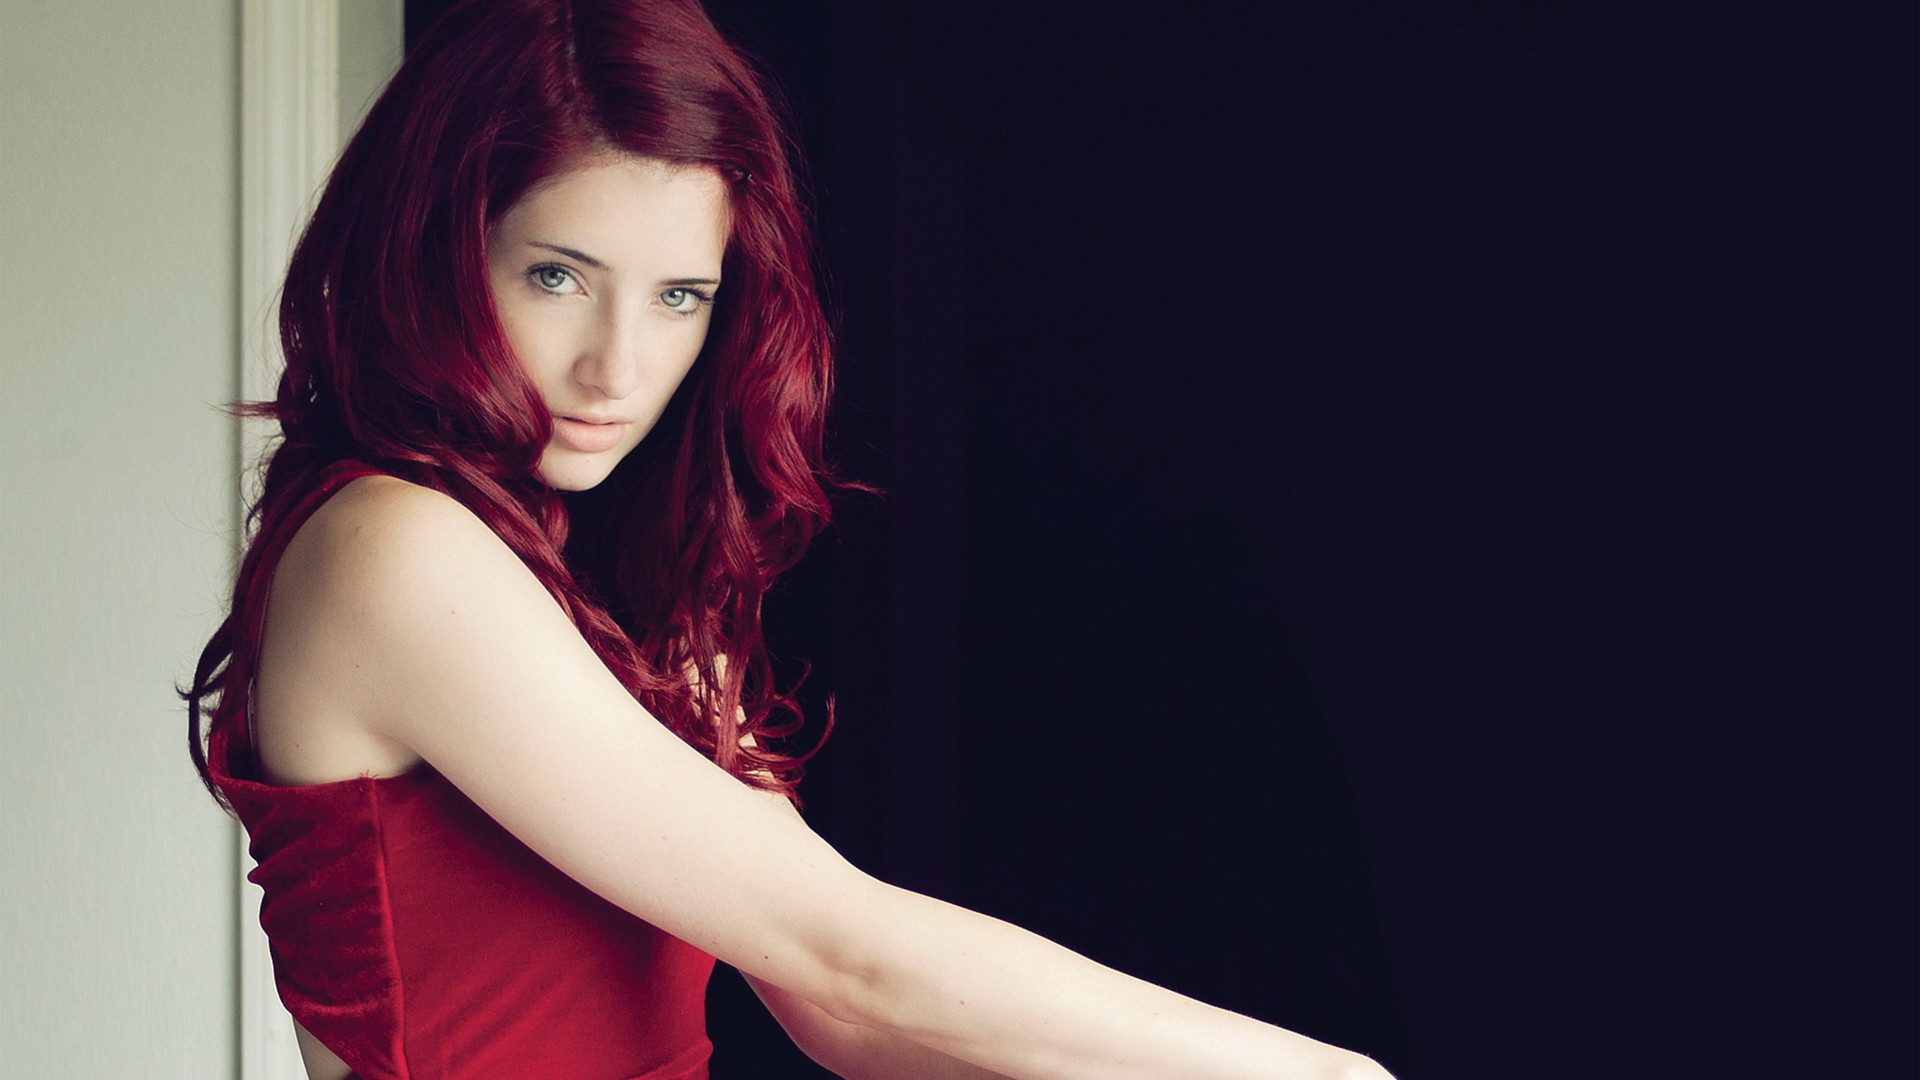 susan coffey wallpapers, pictures, images